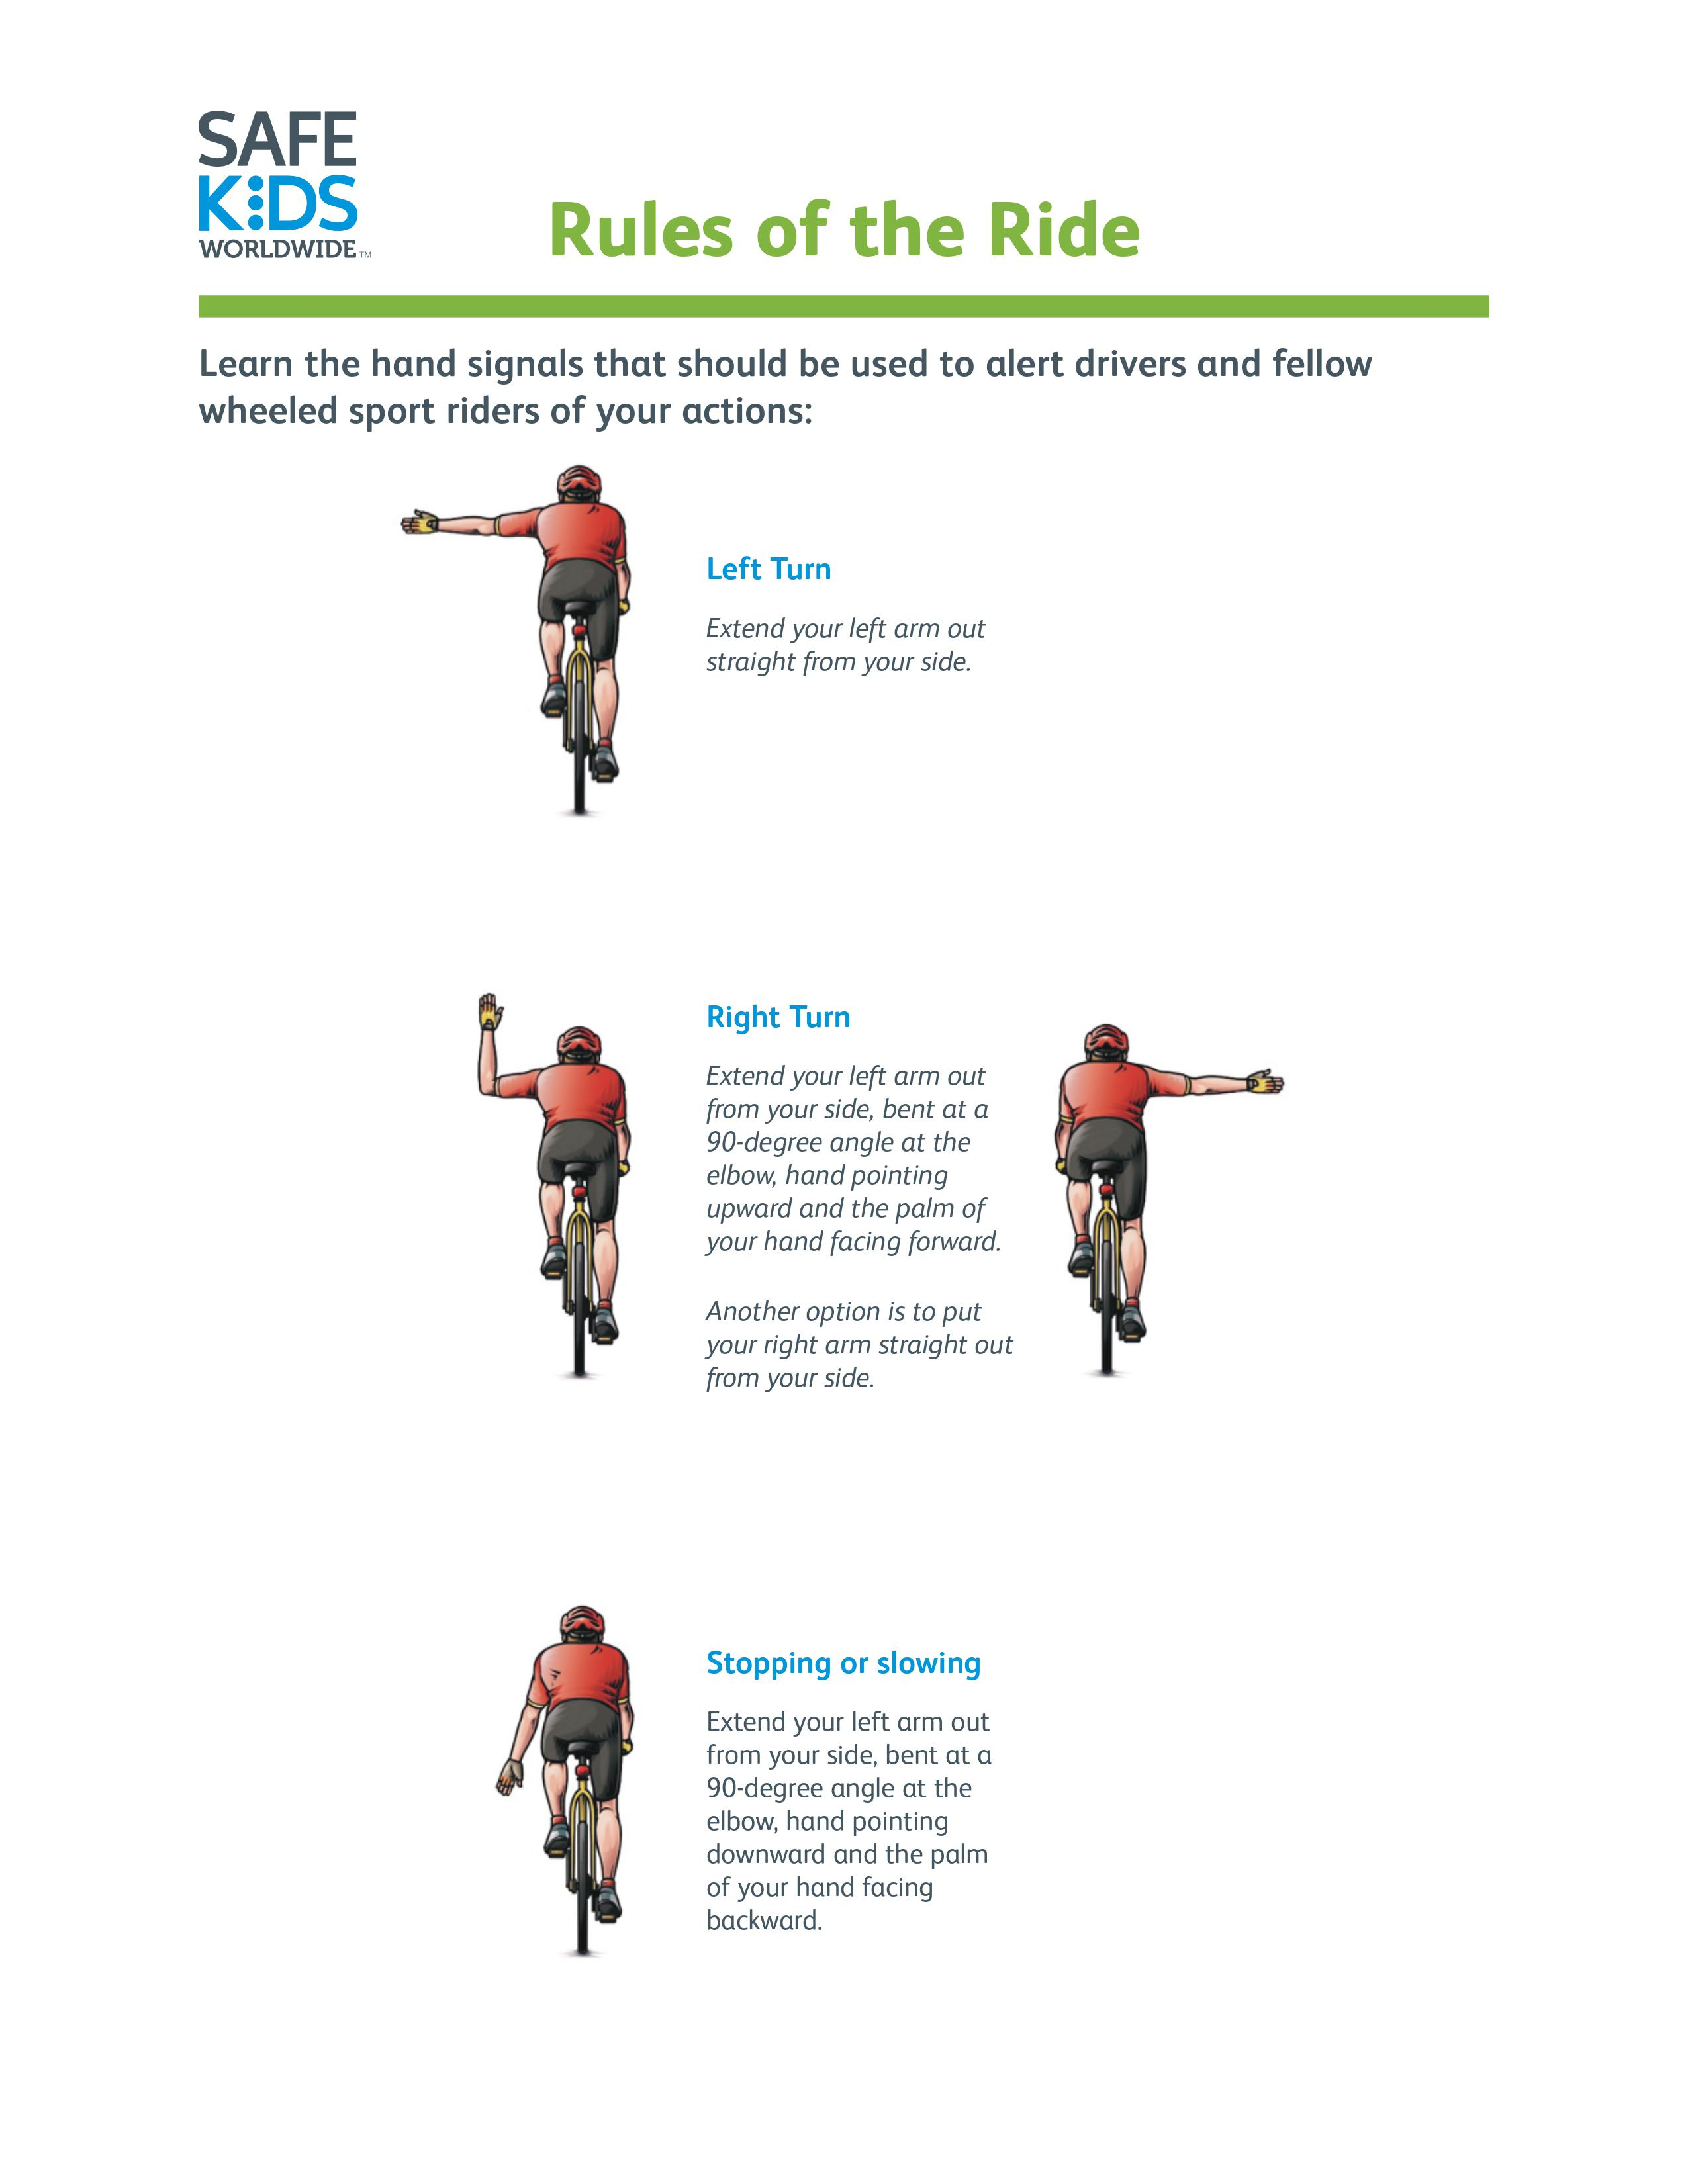 Wheeled Sports Rules of the Road